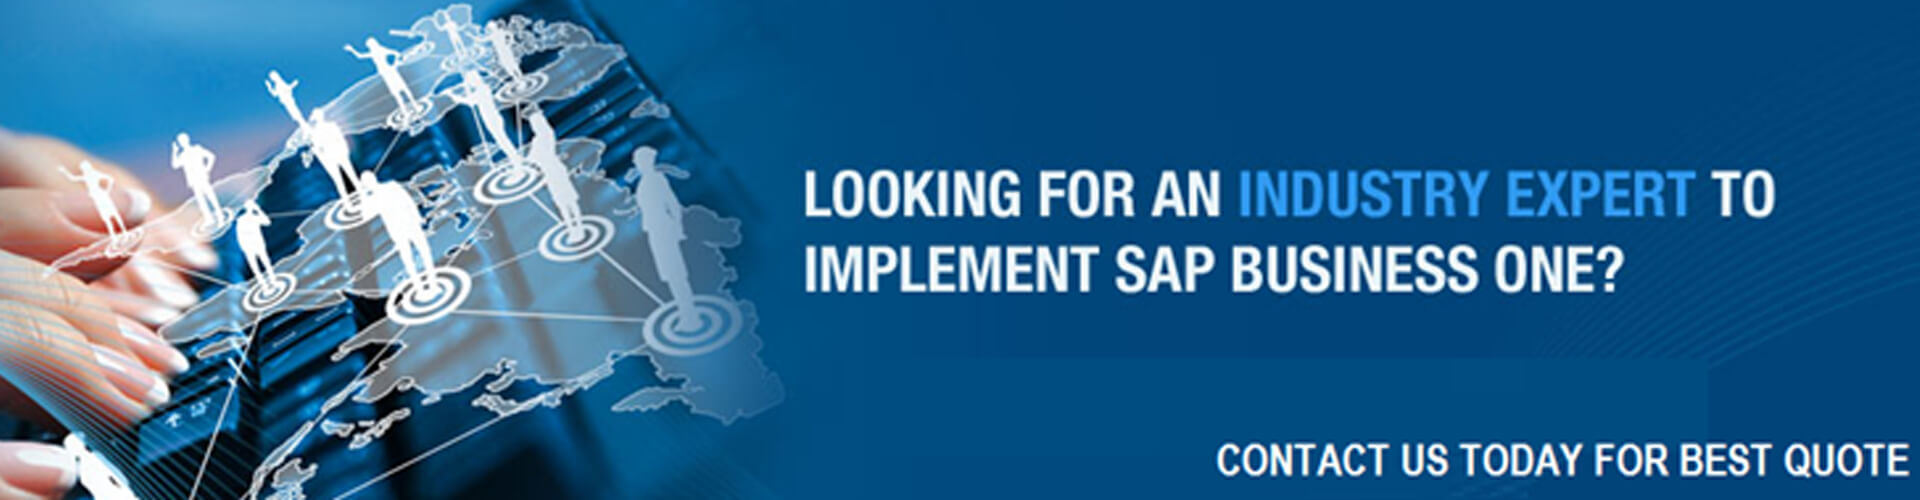 Sap business one implementation sap implementation sap business principle infotechs team has great expertise in implementing sap business one in several industries like manufacturing oil gas distribution malvernweather Image collections